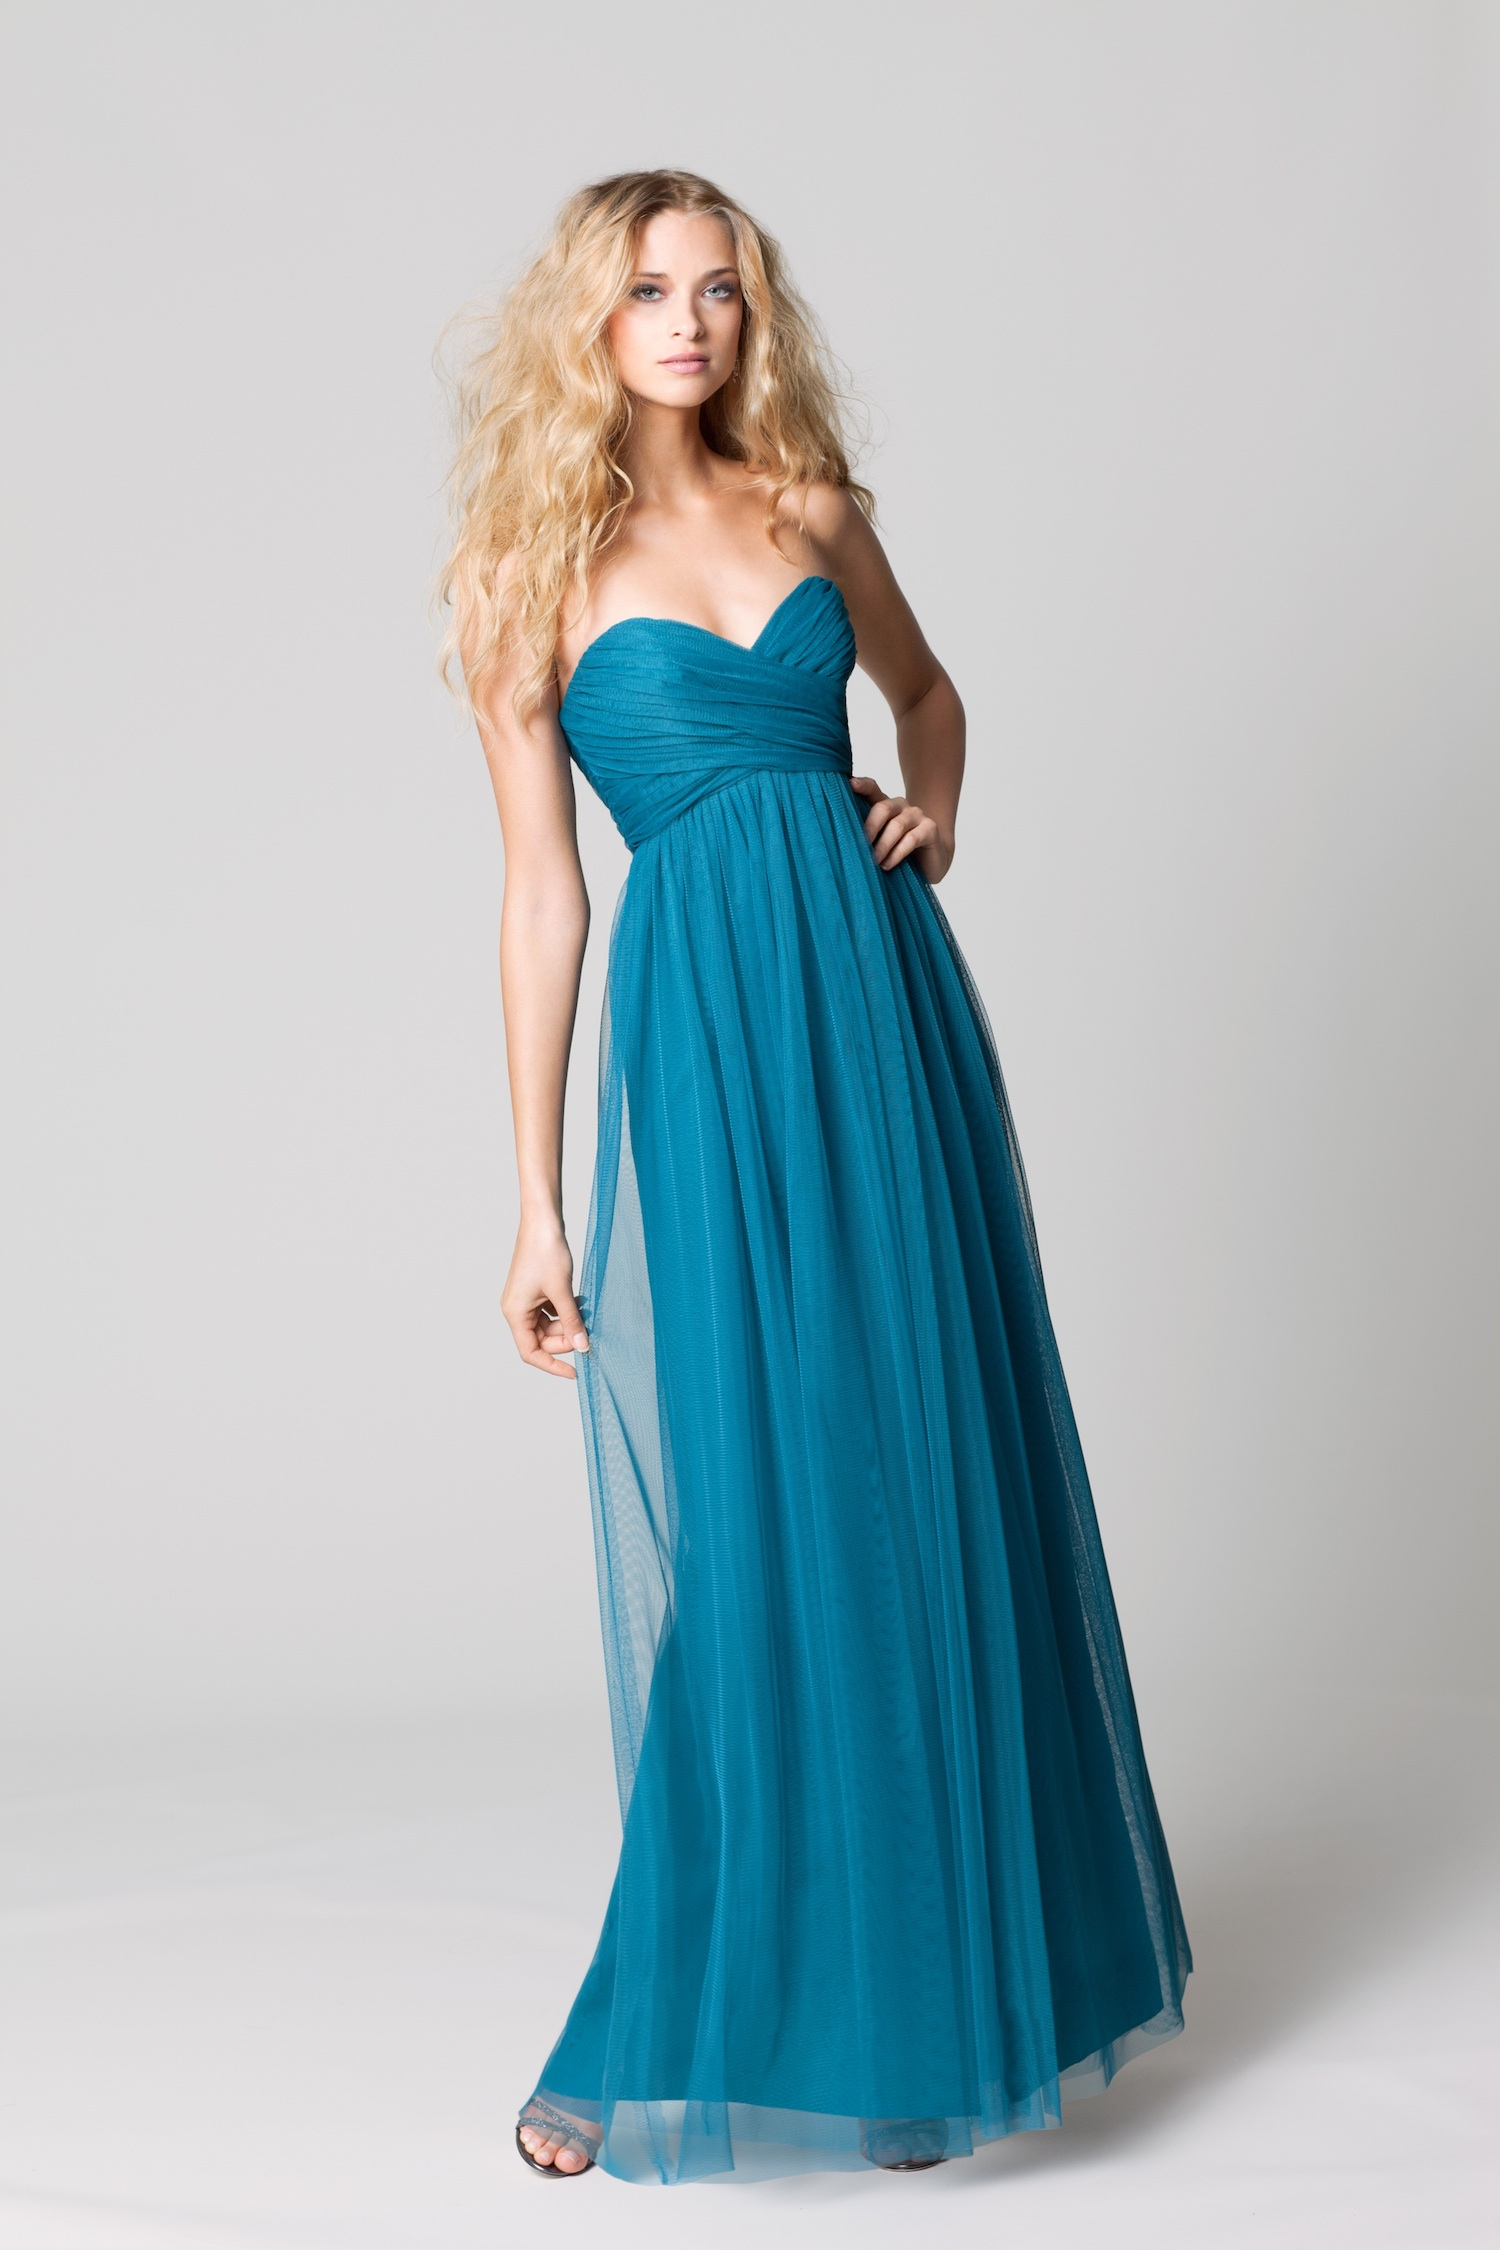 Bridesmaid Dresses 2013 with sleeves uk purple 2014 : Cheap ...